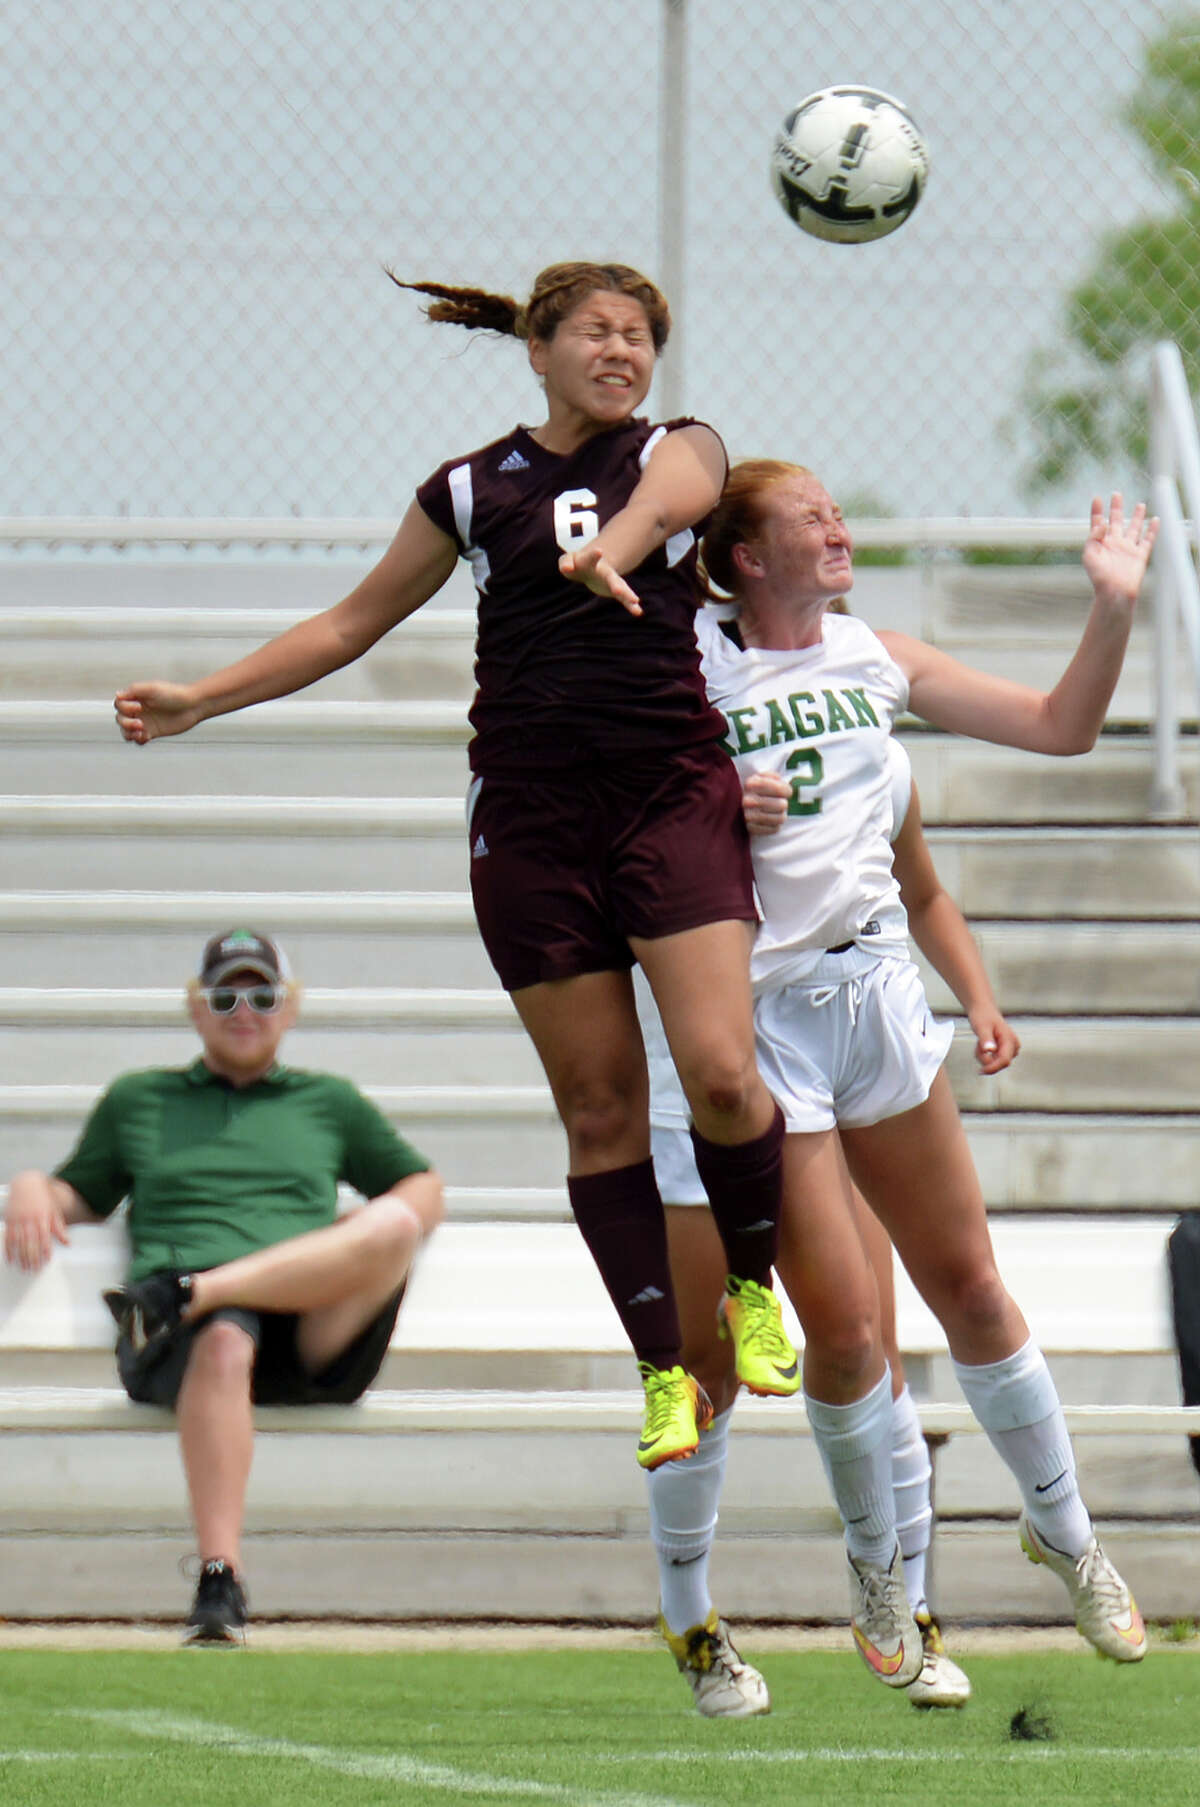 Los Fresnos Falcon Susie Rodriguez (6) leaps to head the ball Saturday against San Antonio Reagan Rattler Devyn Hagan (2) during the U.I.L. Region IV-6A Regional Soccer Tournament championship game at Brownsville Sports Park.